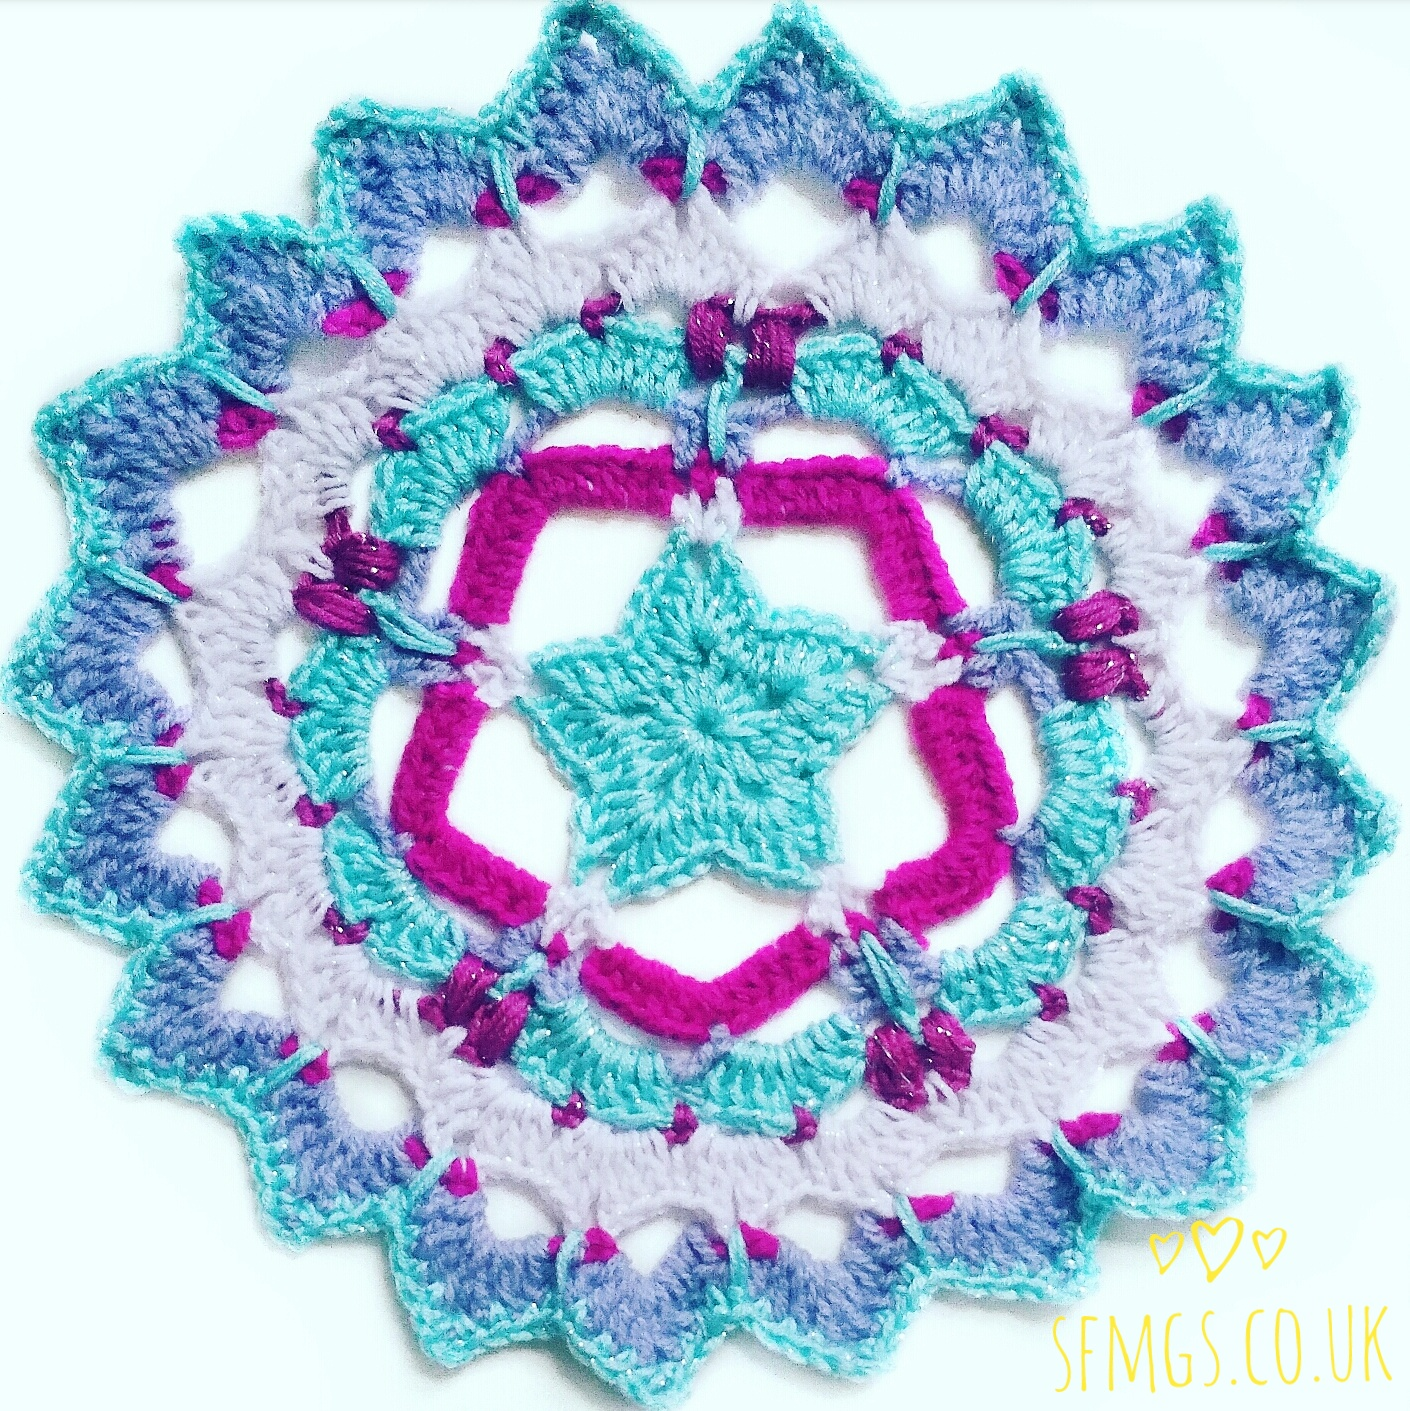 Set Free My Gypsy Soul | a Crochet Craft blog : Festive Sparkle Star ...